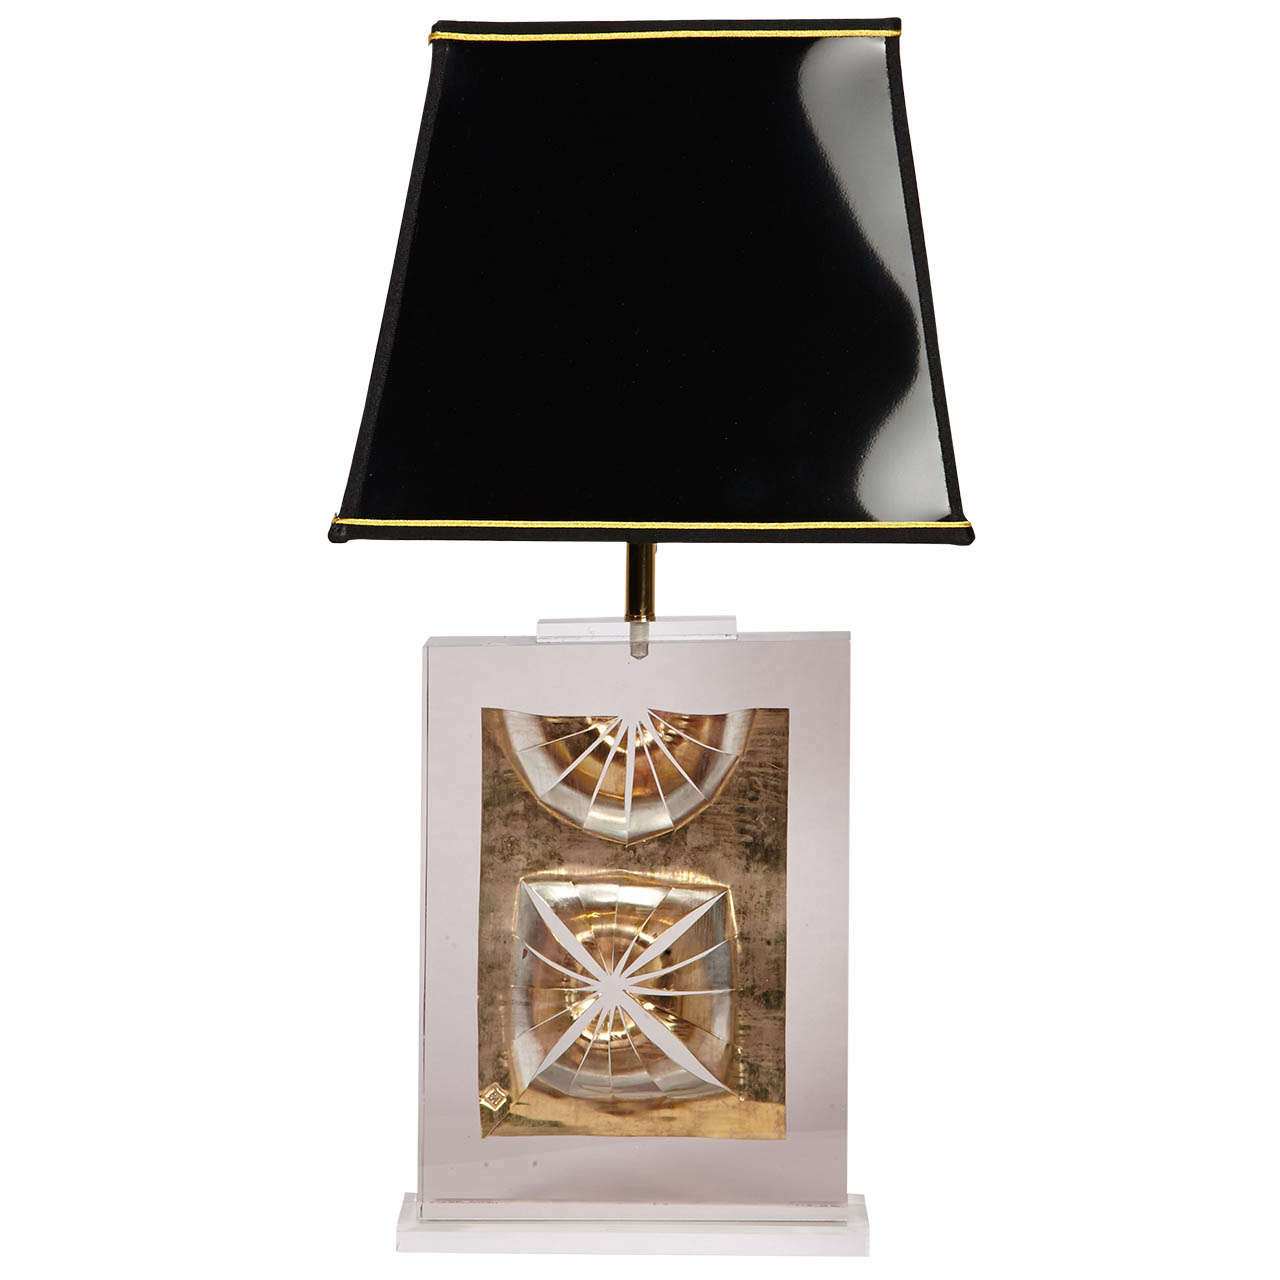 1980s Table Lamp With Inclusion In Lucite By Romeo Paris For Sale